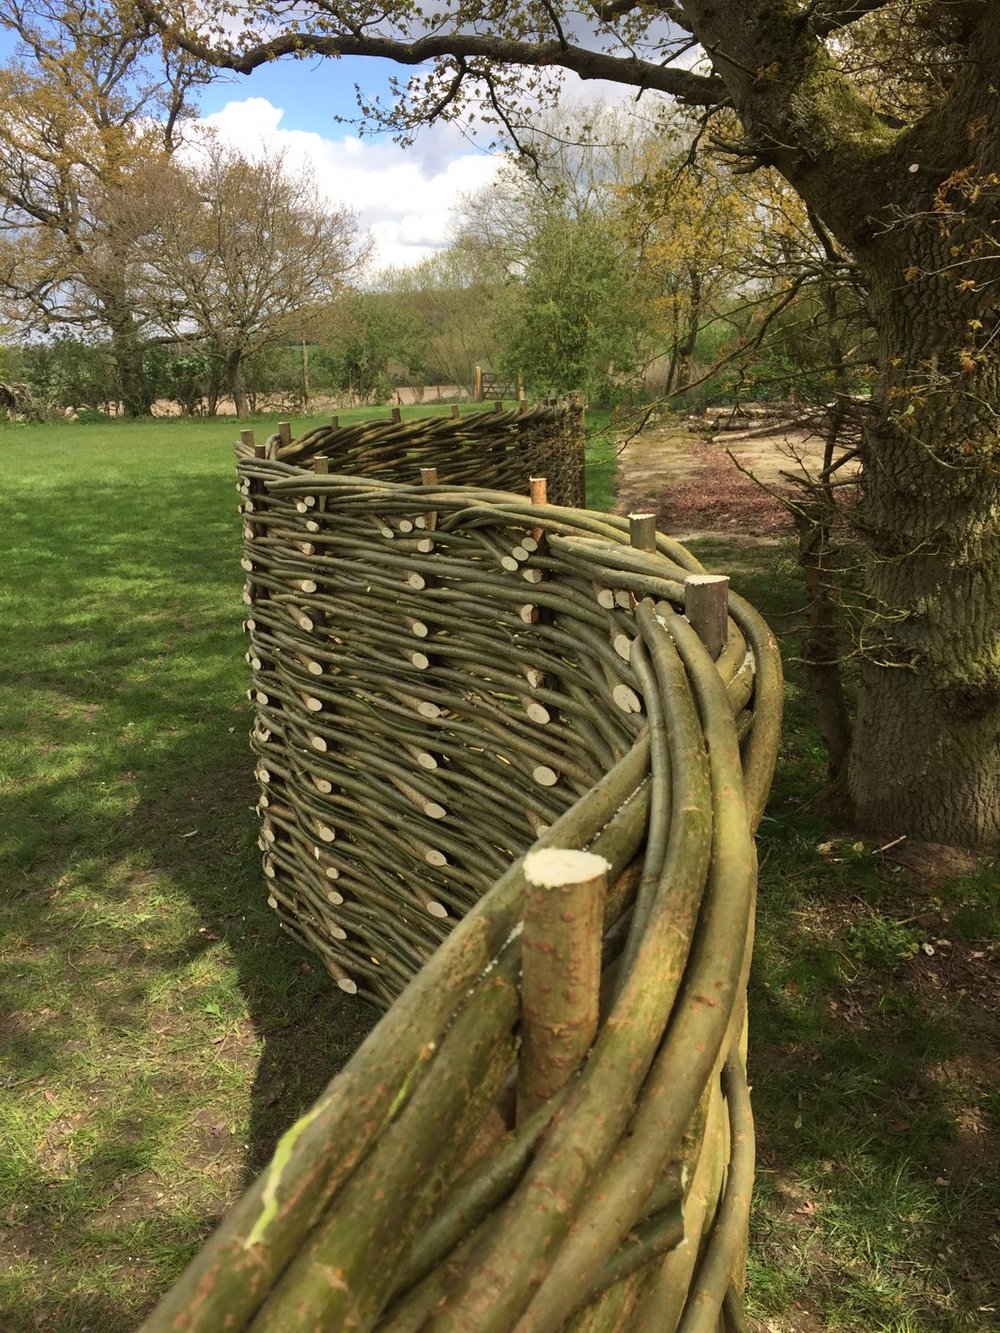 Do all your fences come with the twist along the top? - We call this the 'roll top' and we like to finish off our fences with them. We think it is a handsome finishing touch, but if it is not to your liking we can leave it off.